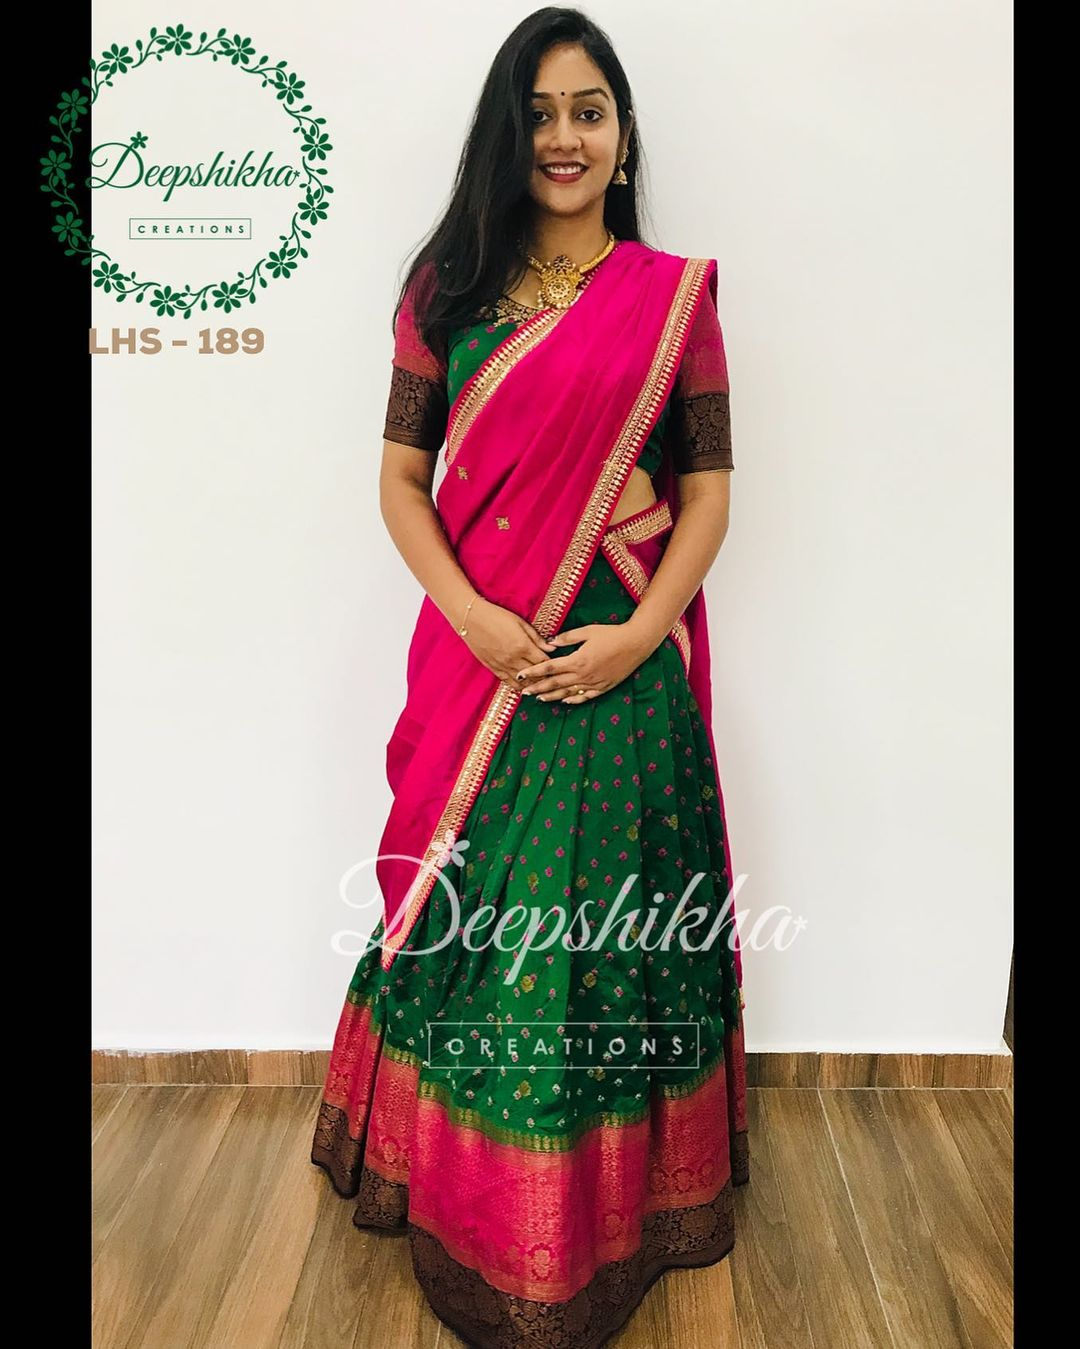 Gorgeous green and pink color combination traditional pattu langa voni. LHS - 189. For queries kindly whatsapp: +91 9059683293. 2021-09-20